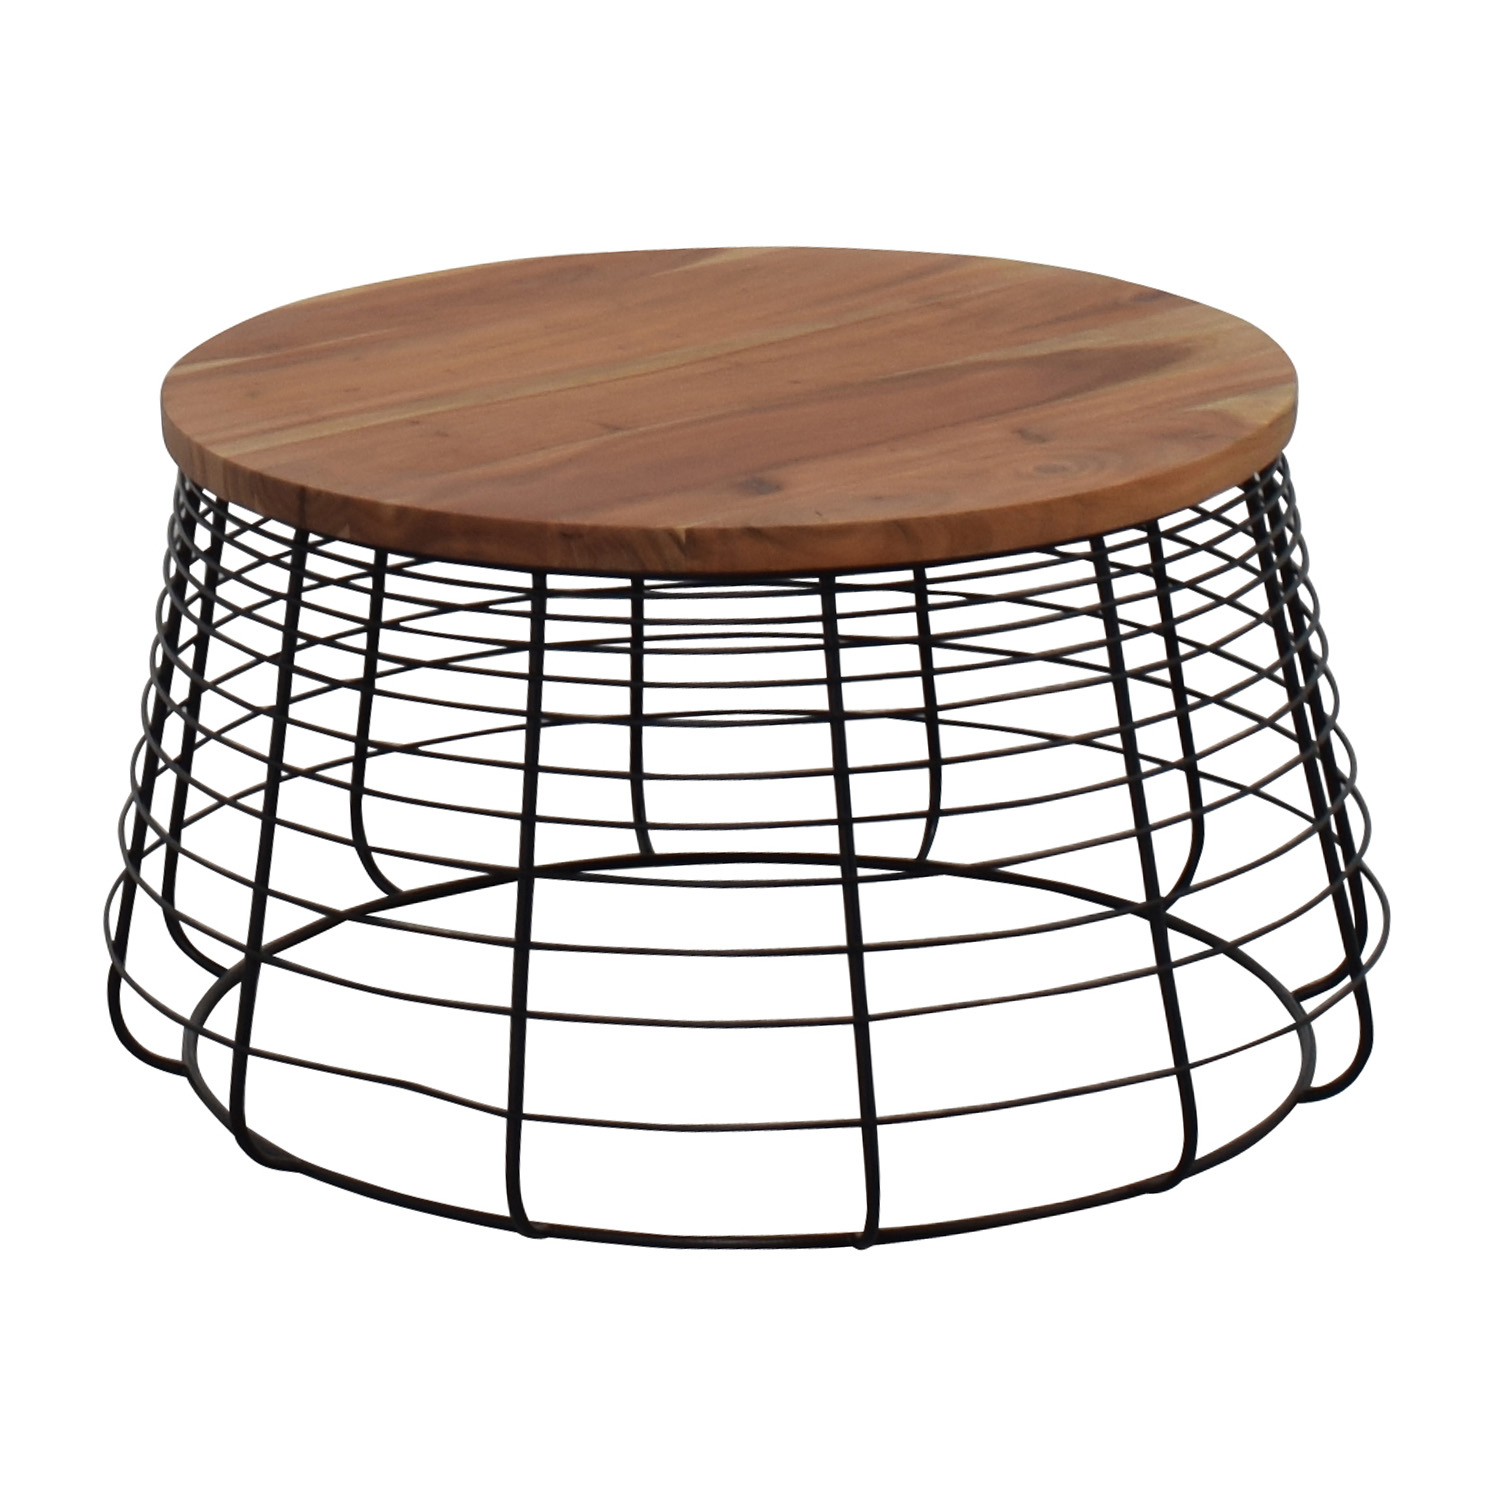 Cb2 Round Coffee Table Starrkingschool